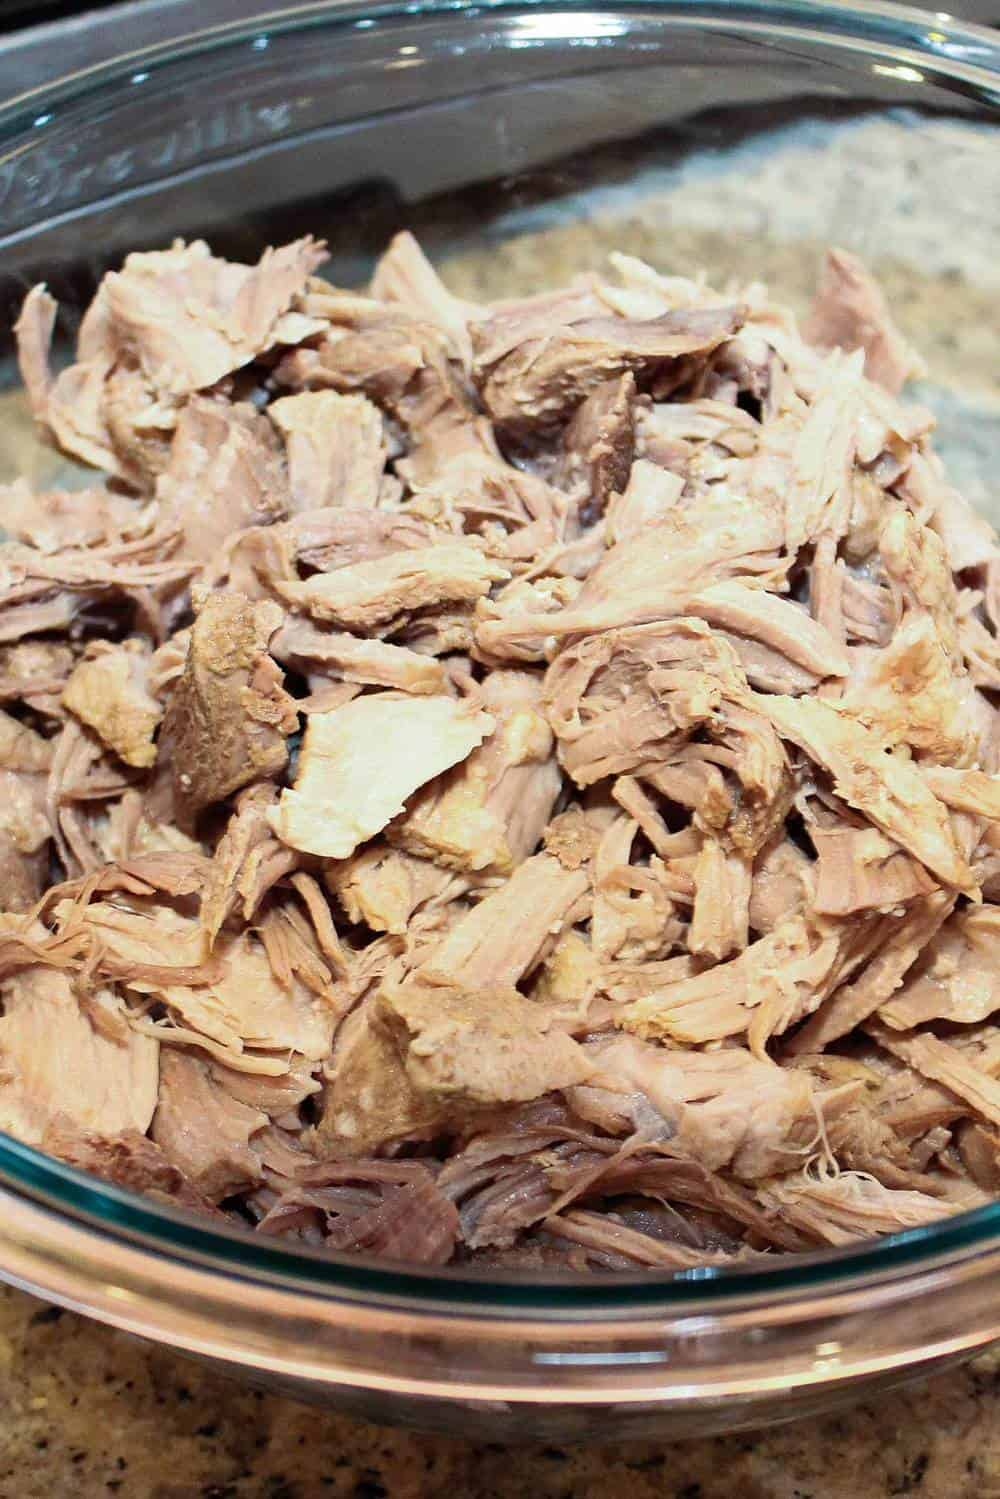 Shredded pork for pozole rojo.